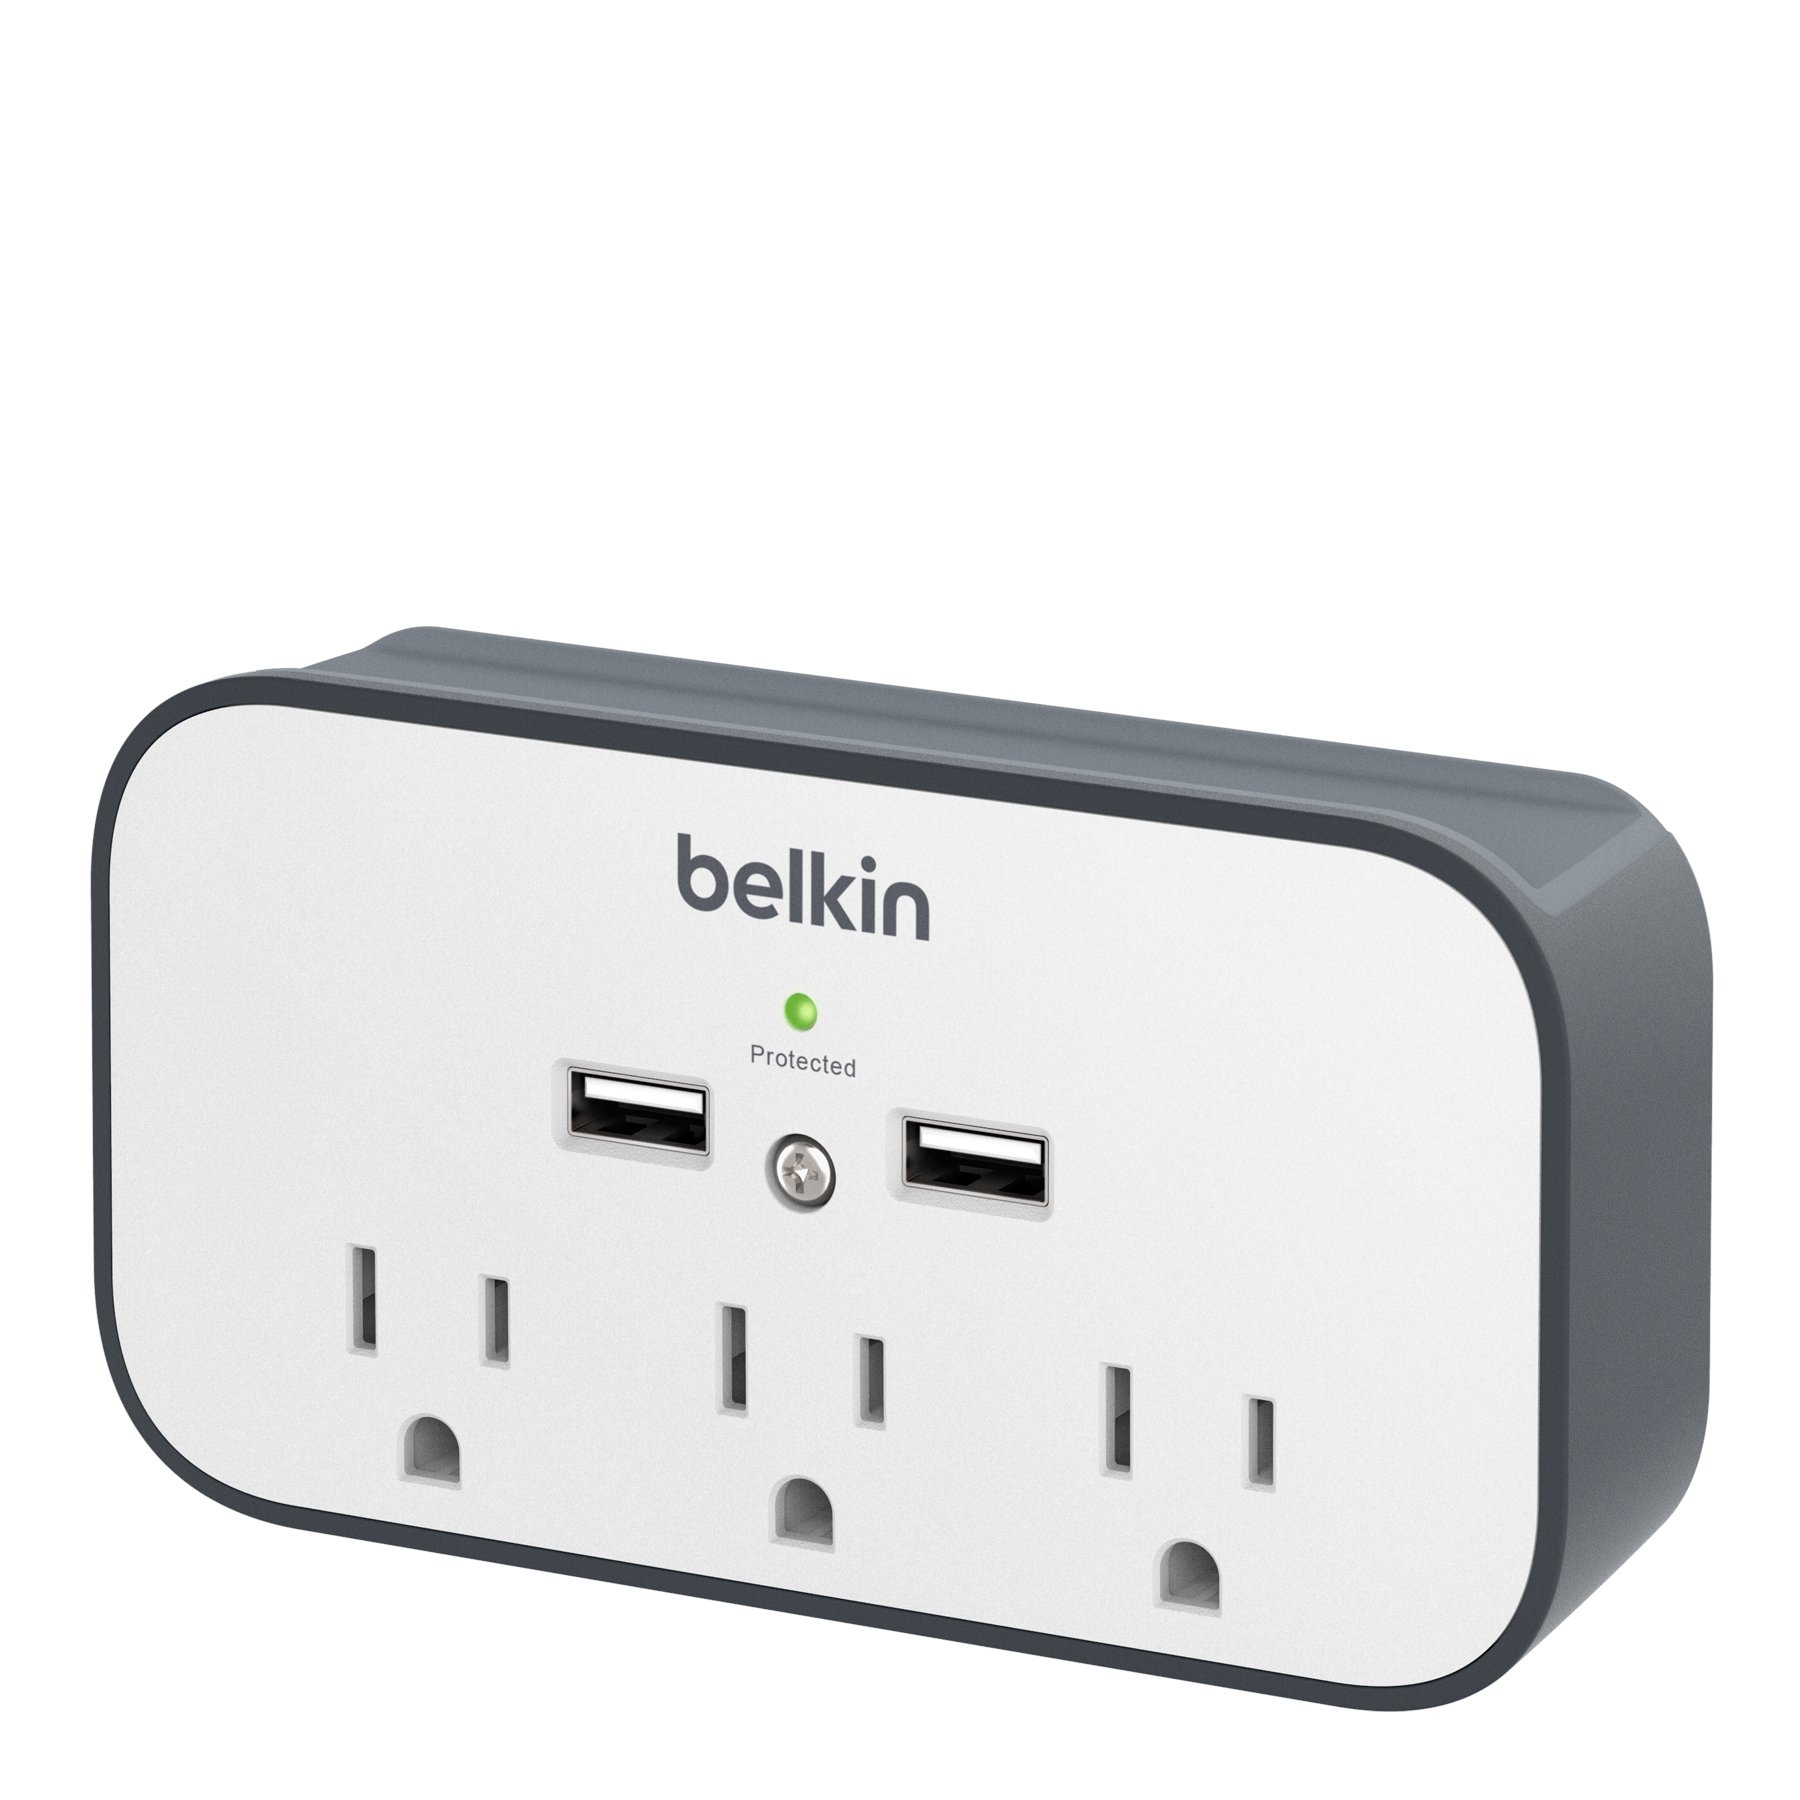 Belkin BSV300ttCW 3-Outlet Wall Mount Cradle Surge Protector with Dual USB Charging Ports (2.4 Amp Total)